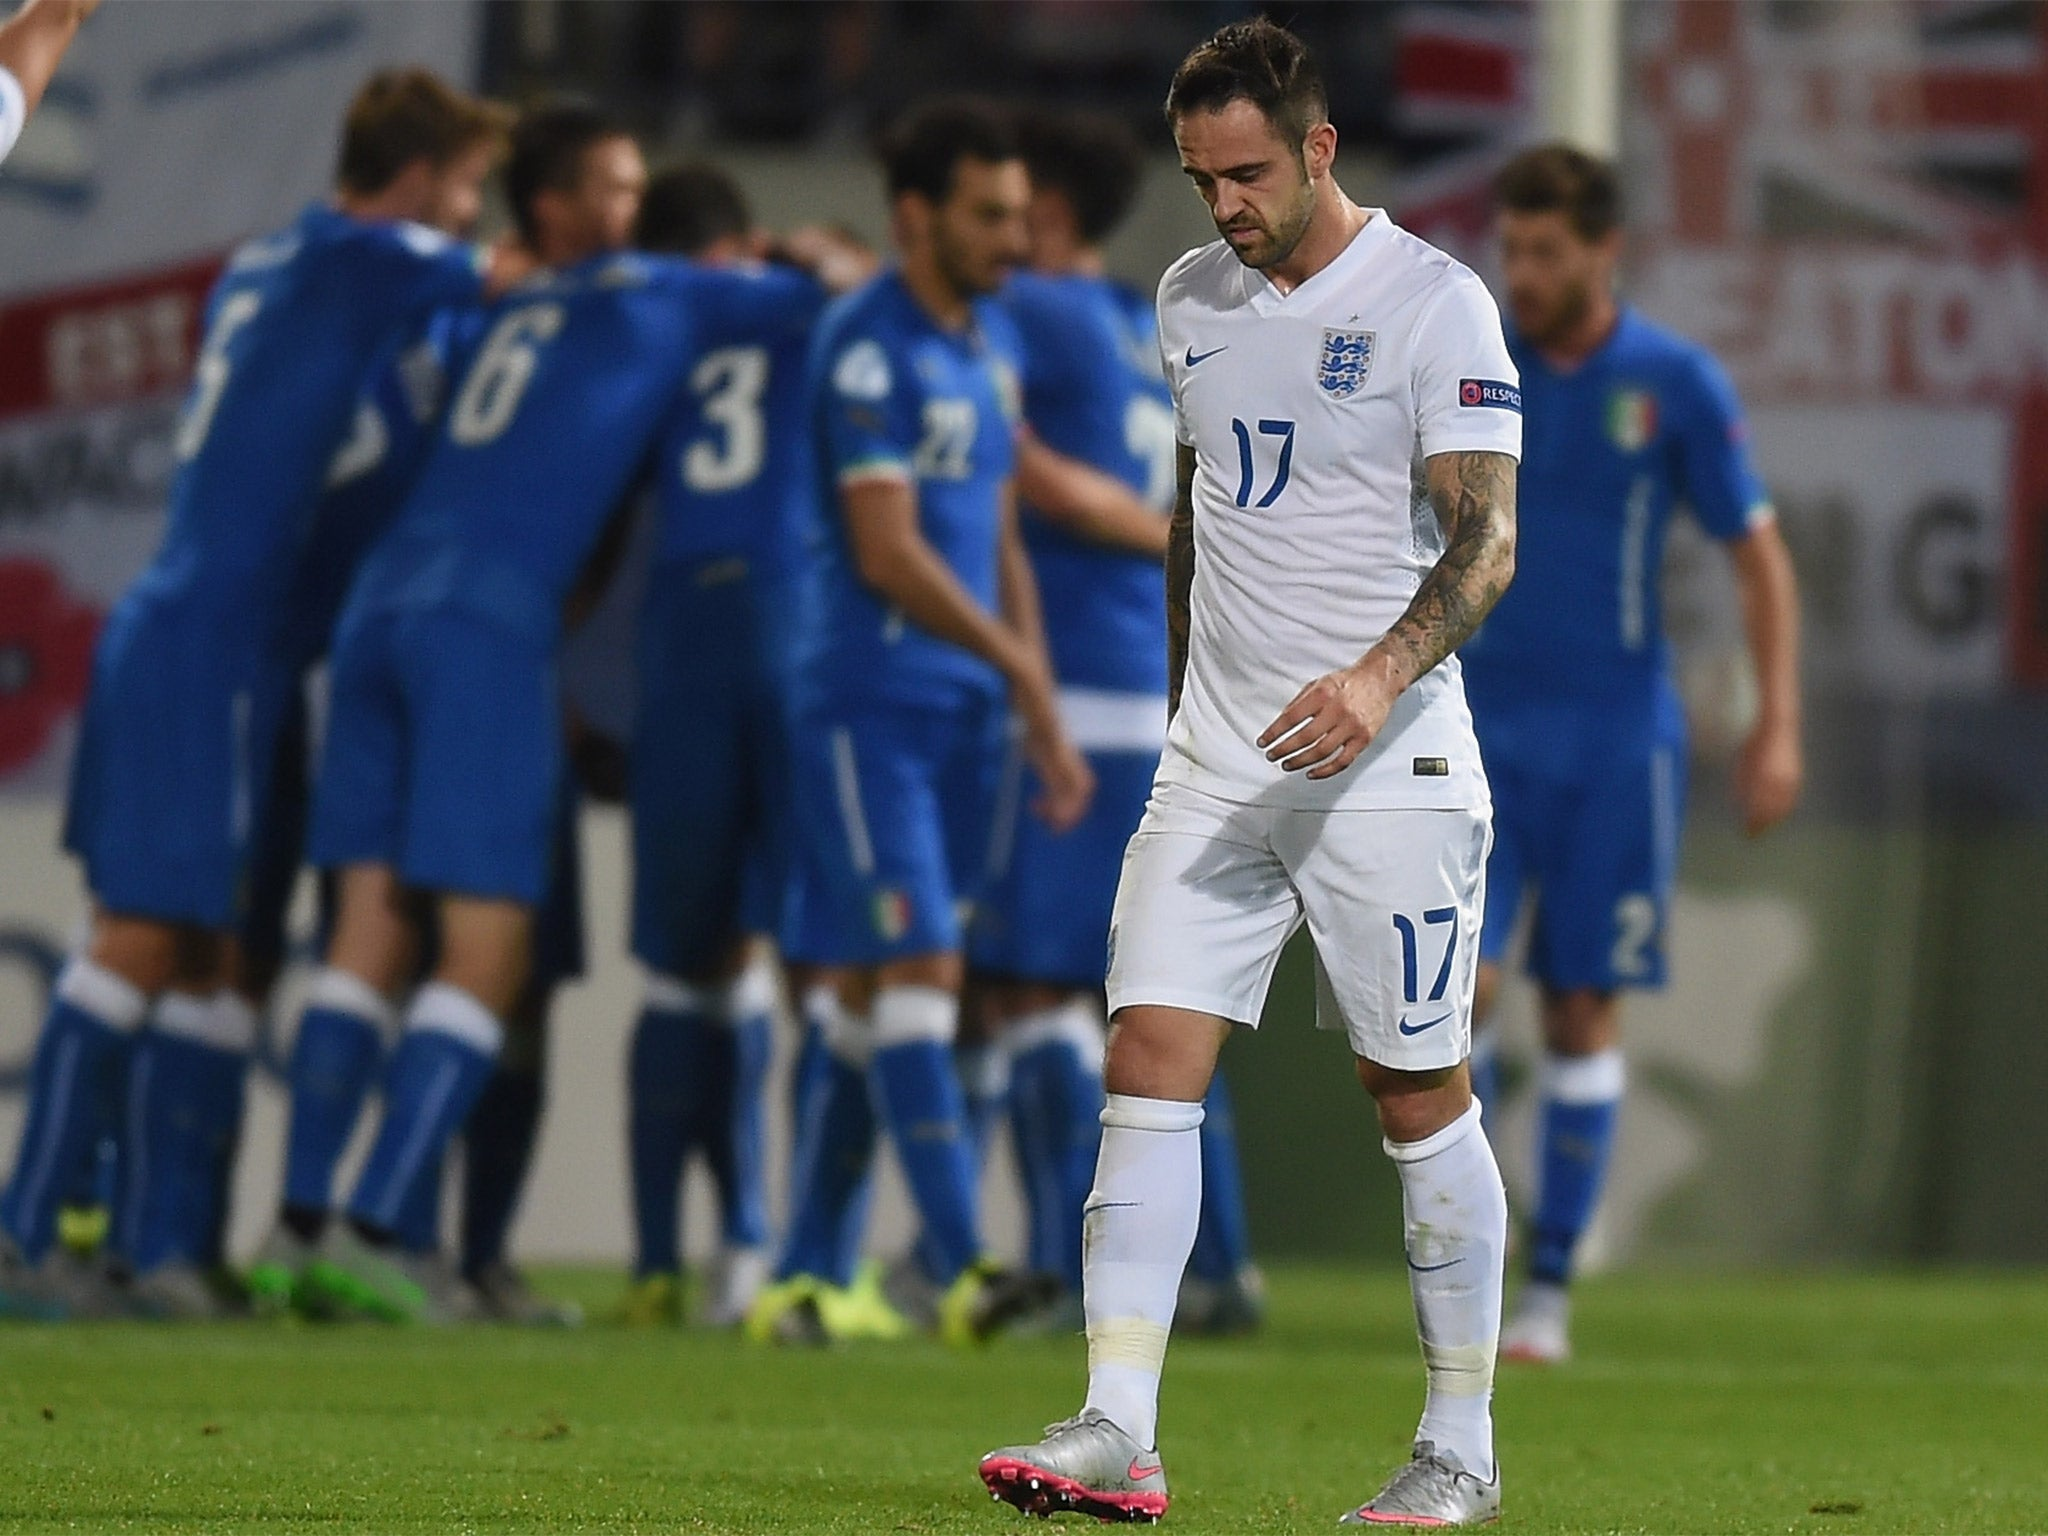 b713f421fc7 canada italy 5 gagliardini home soccer country jersey 9562f 8825a  sale  danny ings looks dejected as the italians celebrate their third goal 1fbc1  85e70